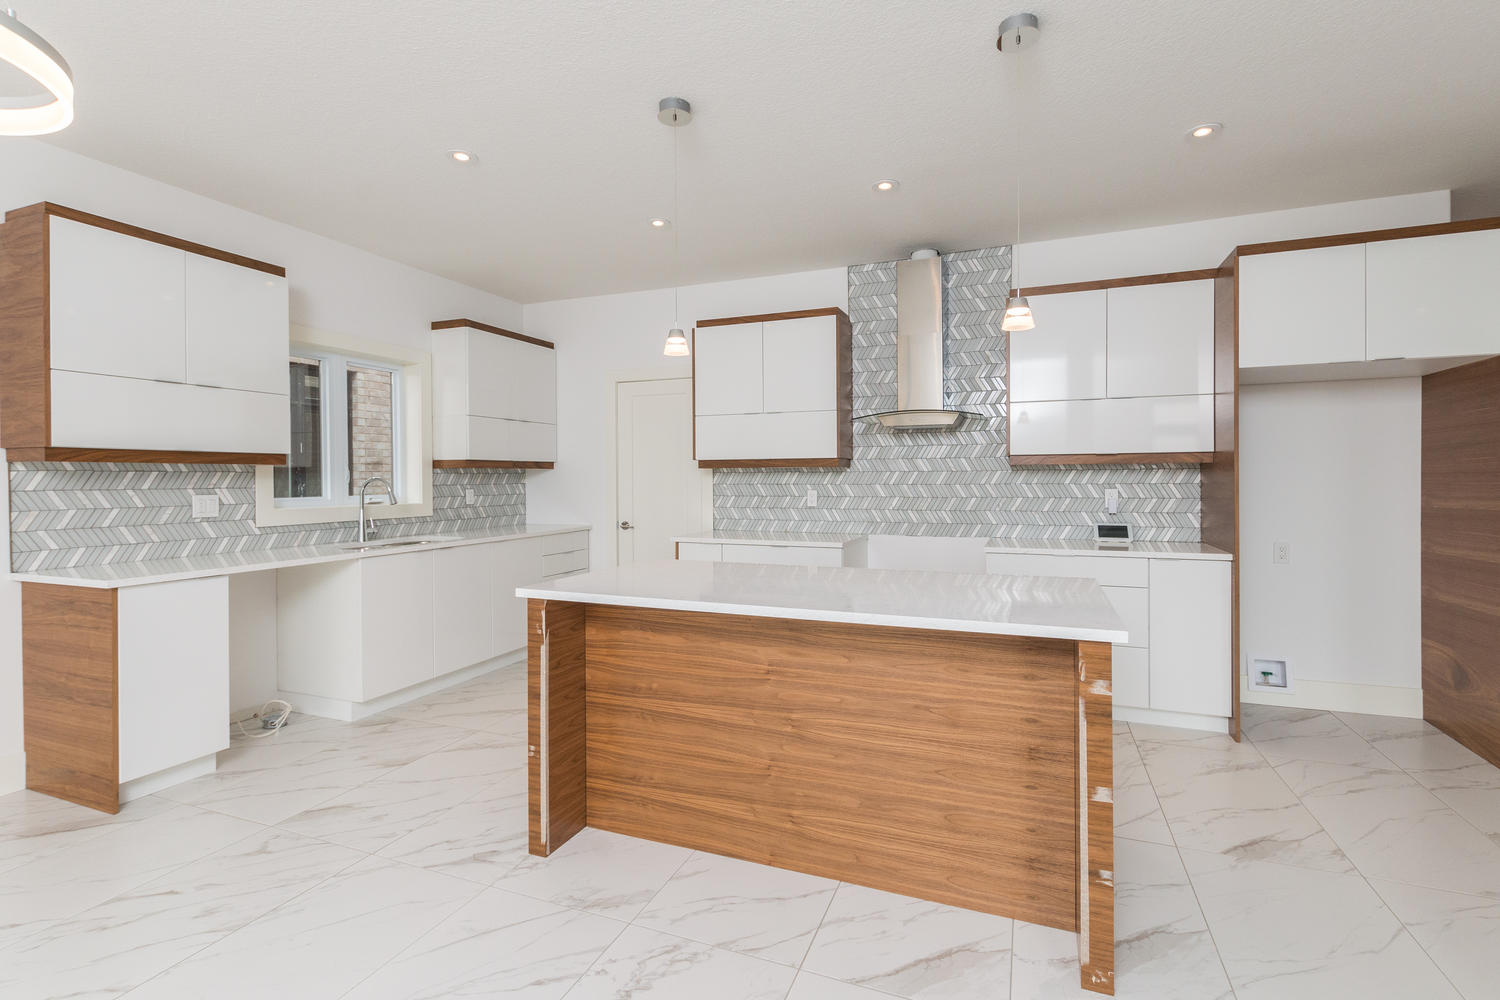 Royal Premier Homes - Eco Friendly Home Builders London - Frontier - Empty Kitchen Area